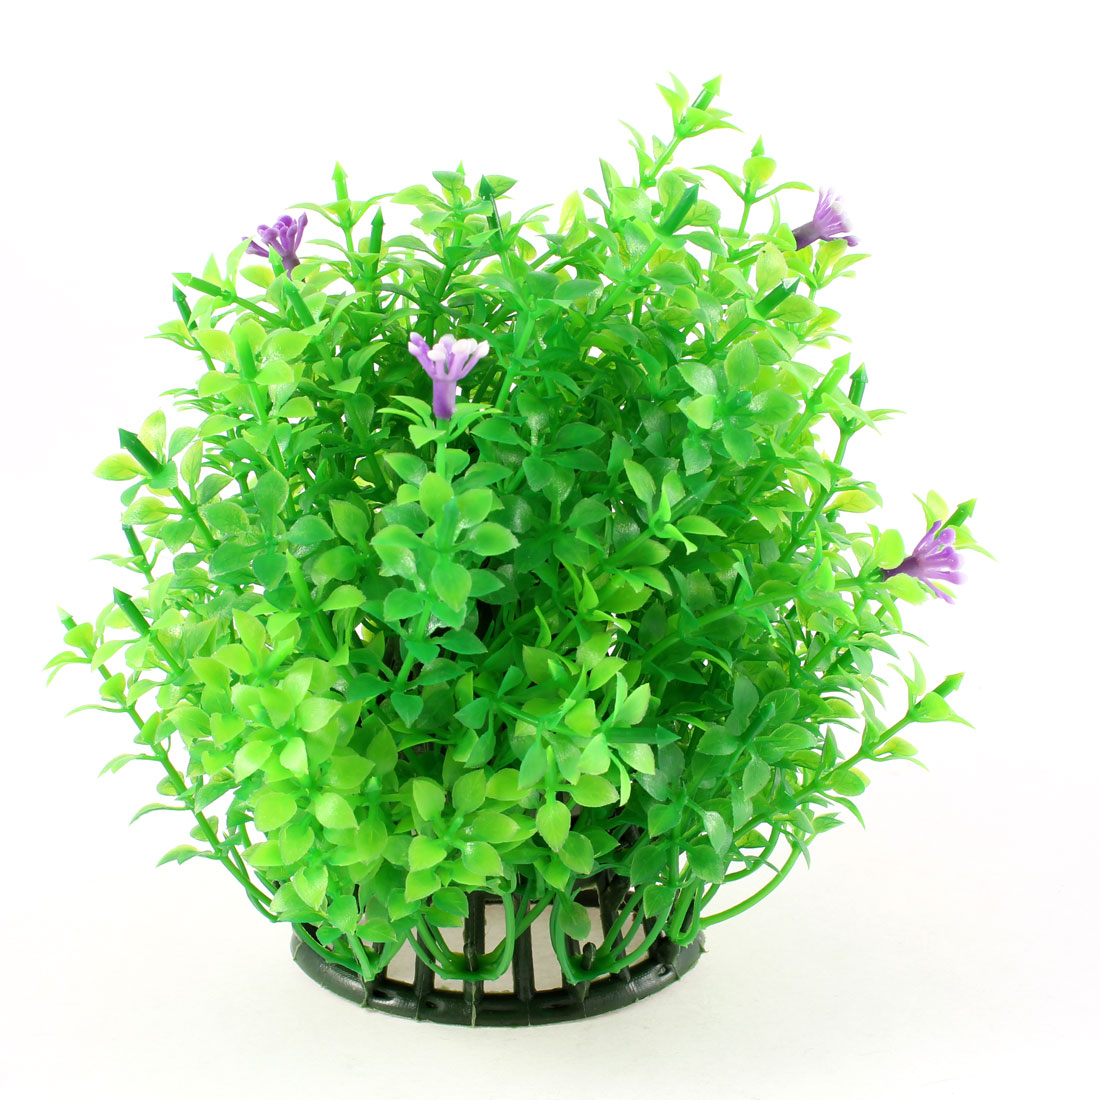 Purple Flower Accent Green Emulational Underwater Grass Decor for Aquarium